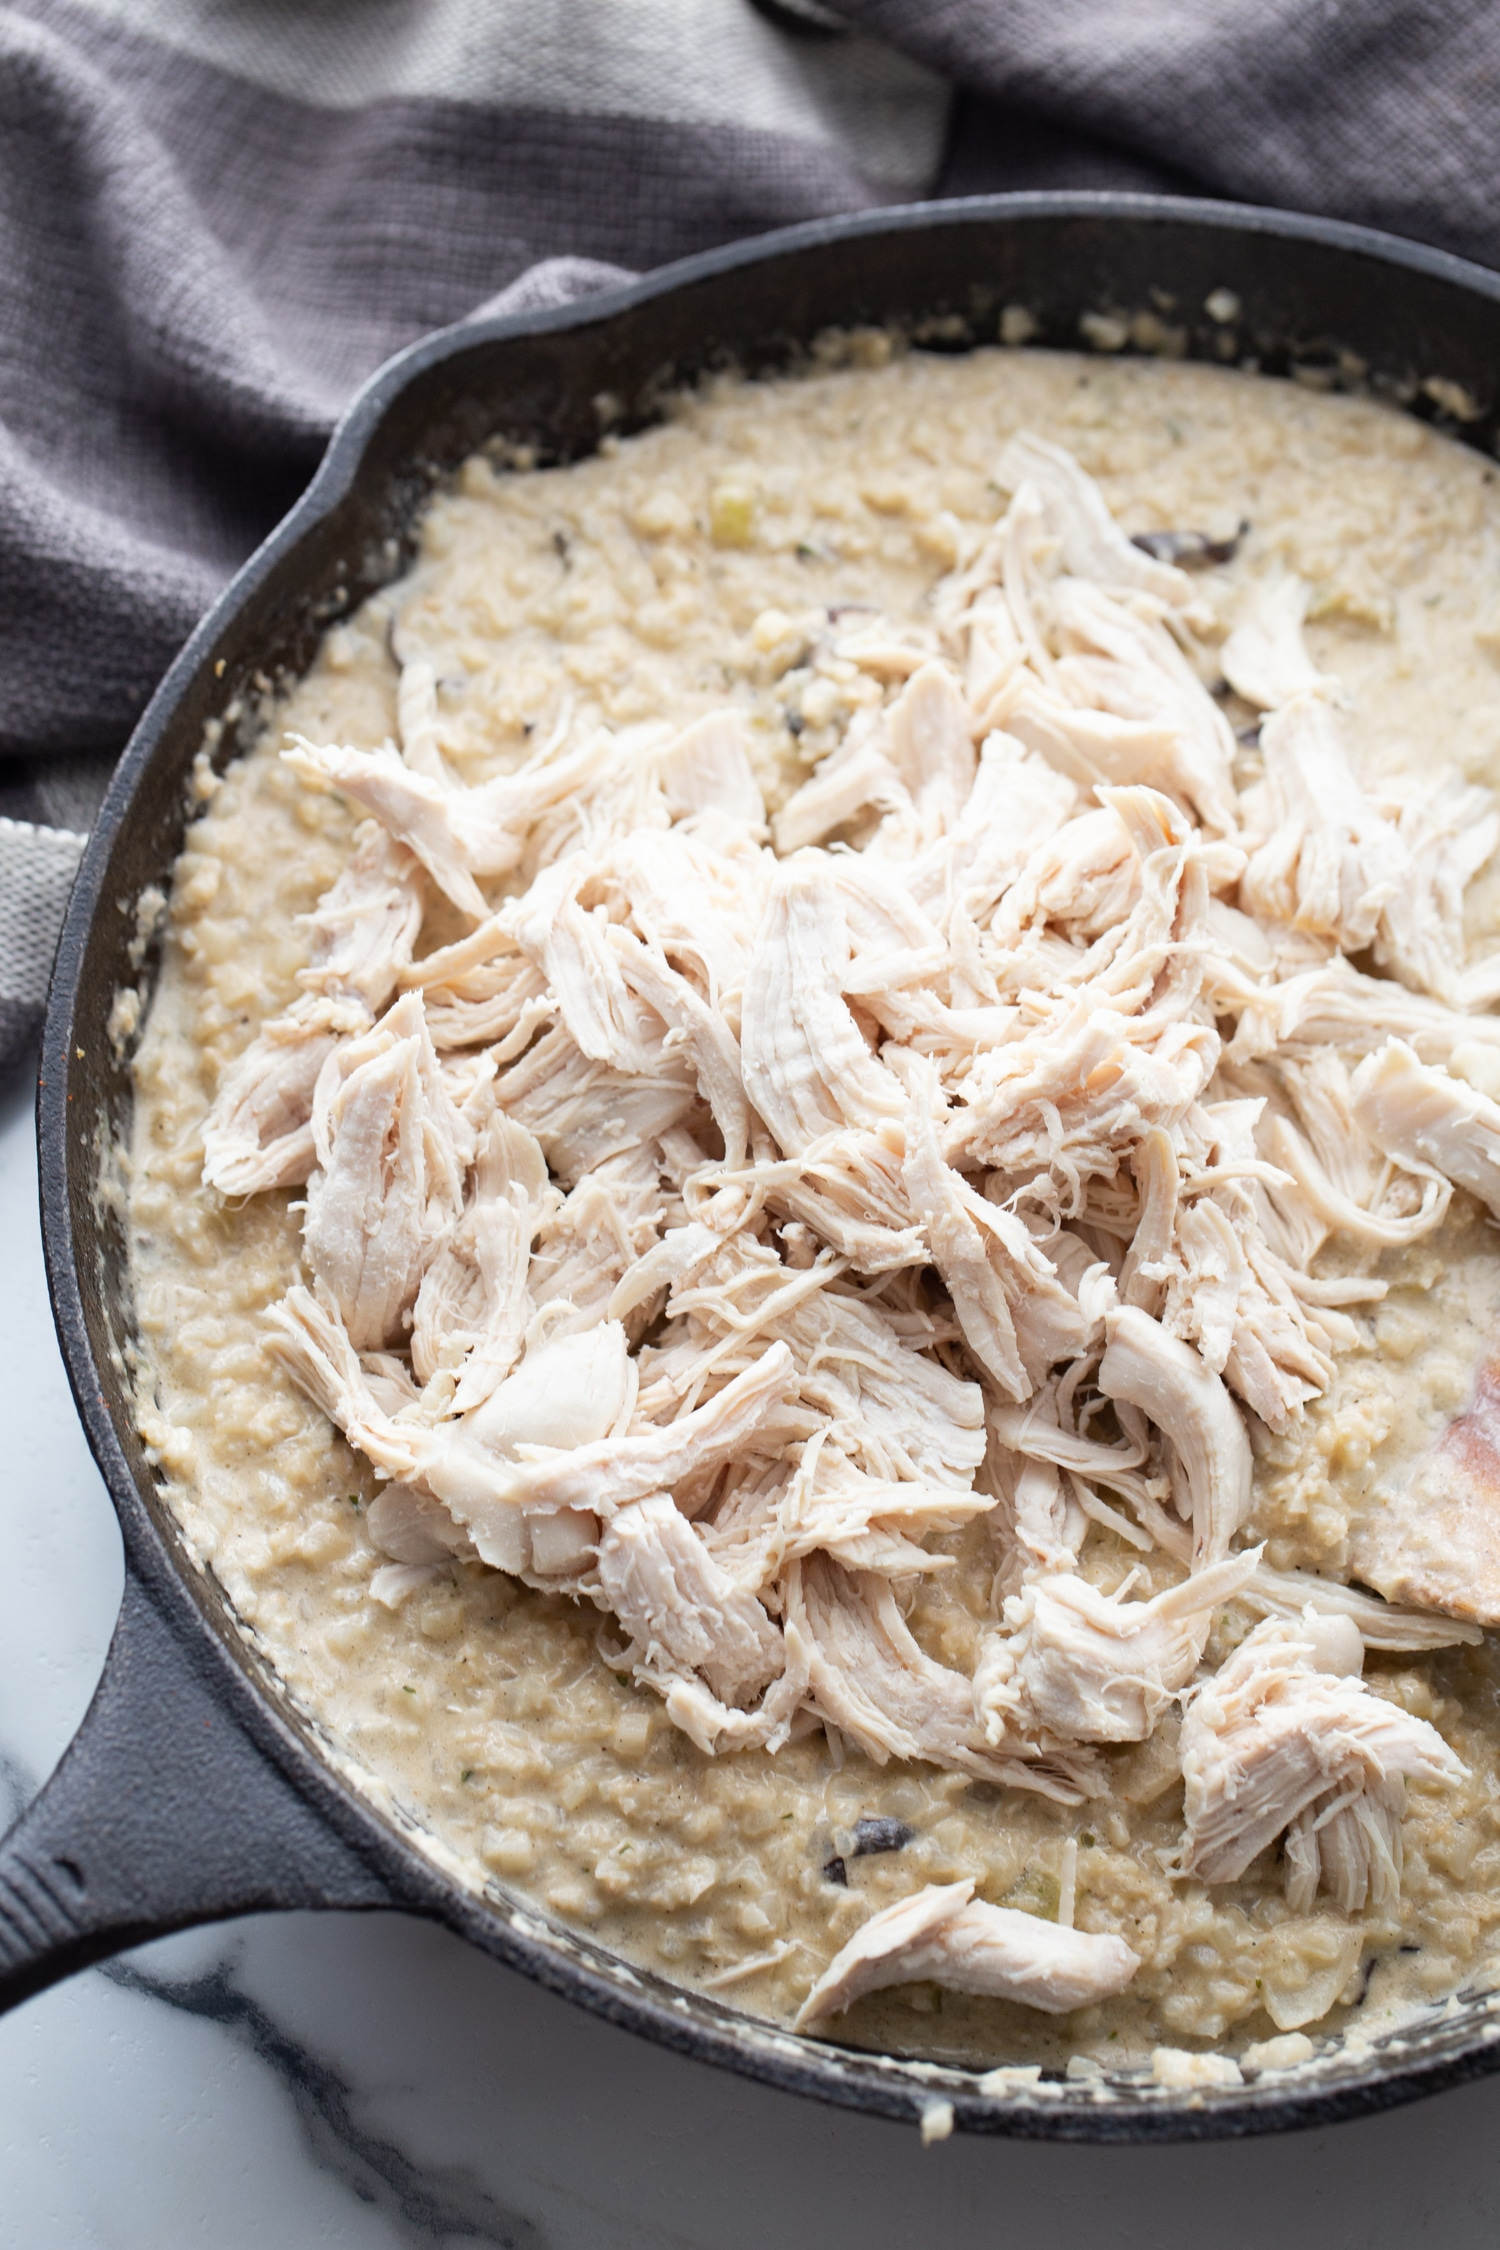 shredded chicken on top of cream, mushrooms and veggies in a skillet